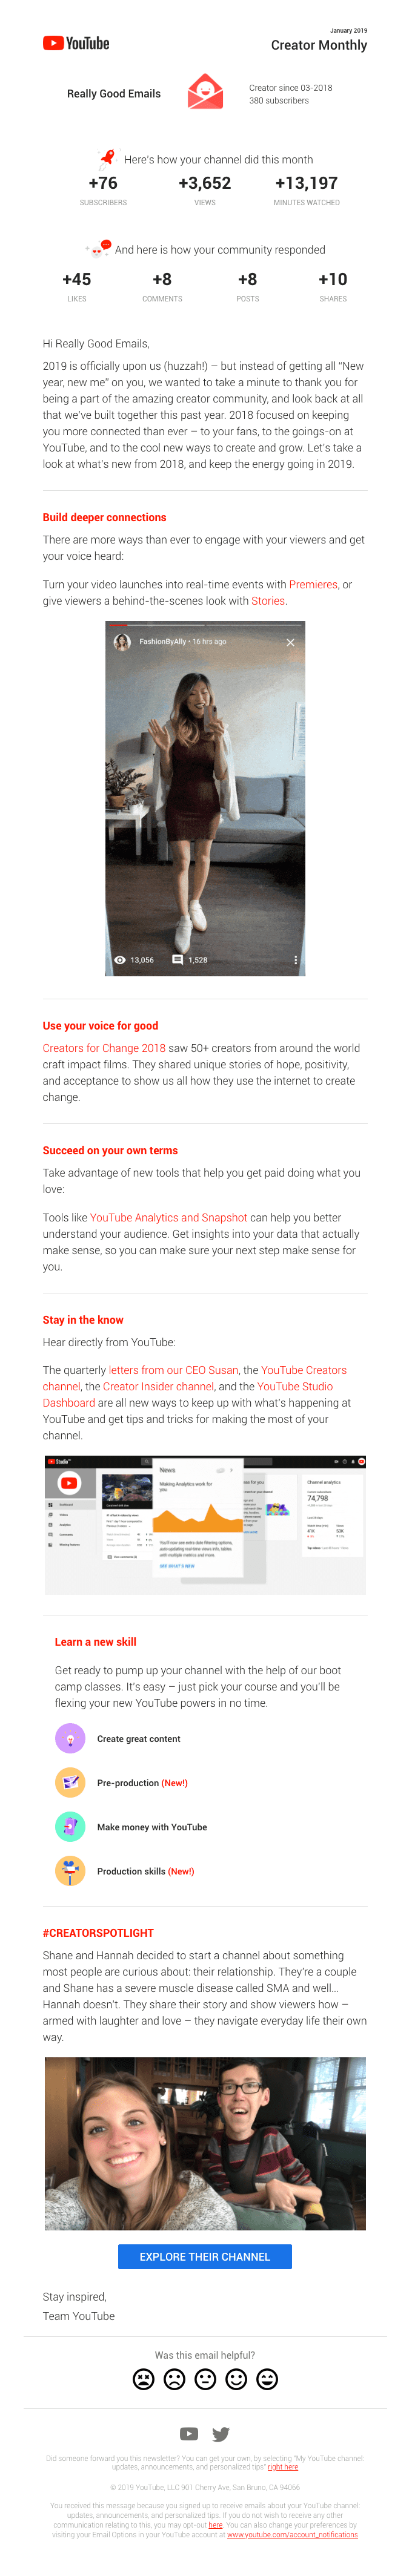 Really Good Emails, here's how your channel did last month